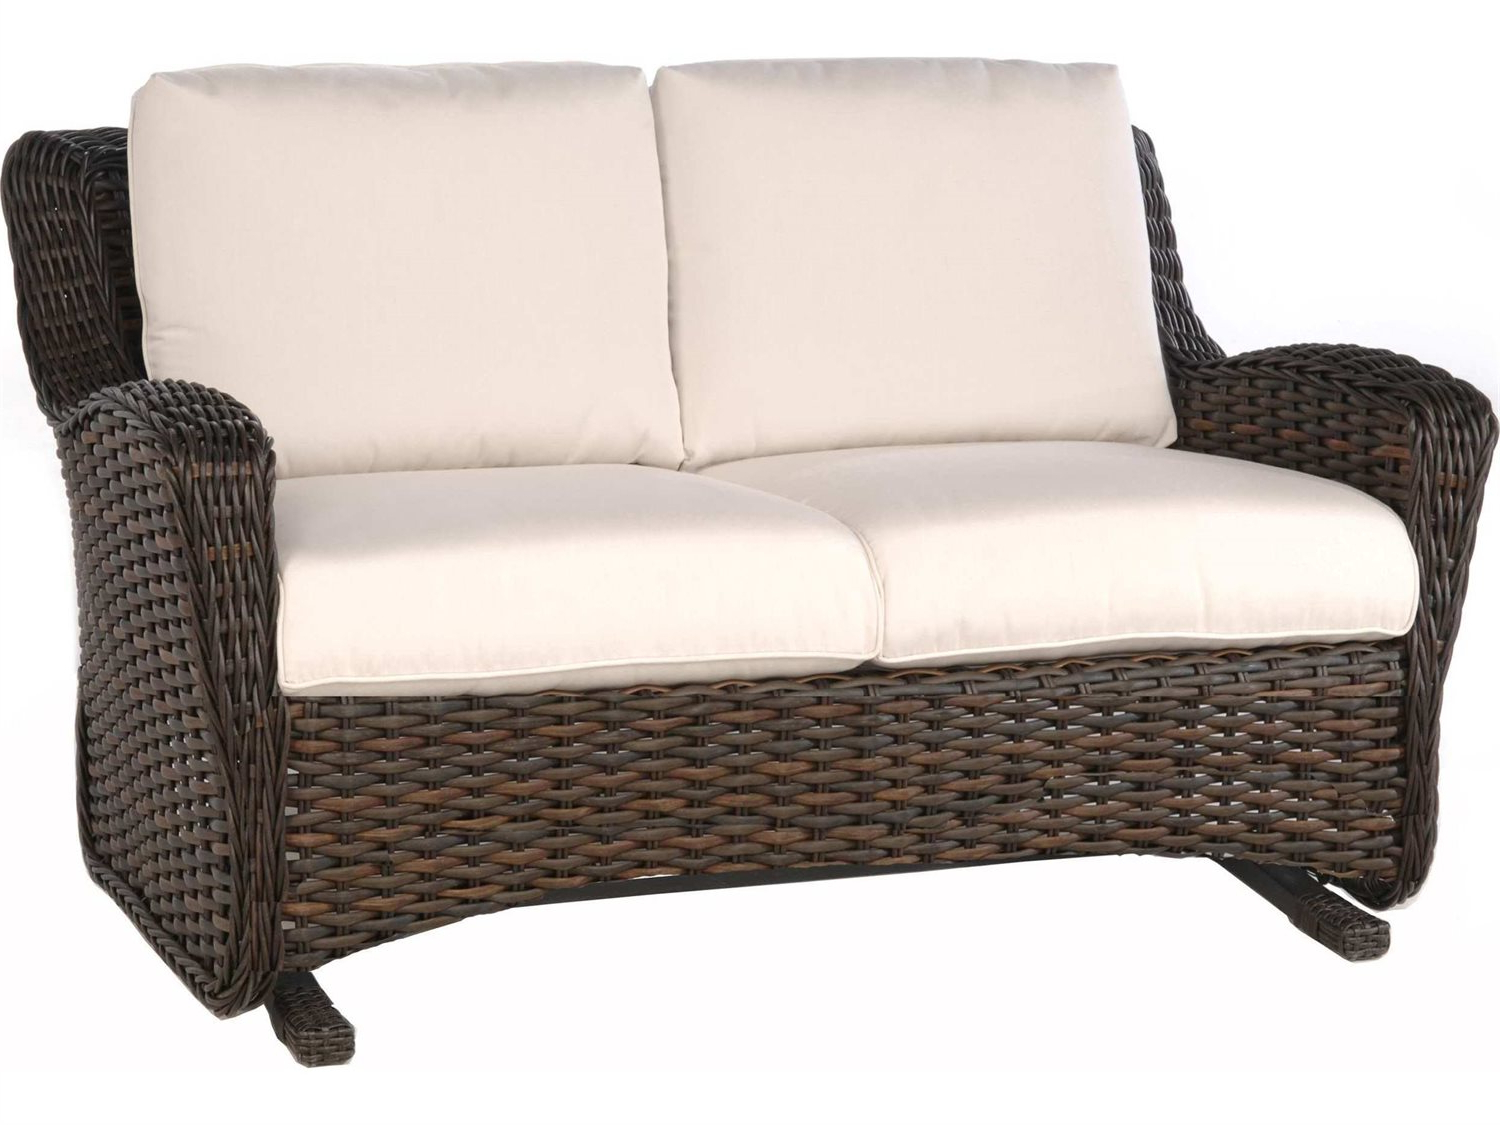 Well Known Outdoor Loveseat Gliders With Cushion Intended For Ebel Dreux Loveseat / Loveseat Glider Replacement Cushions (View 23 of 25)